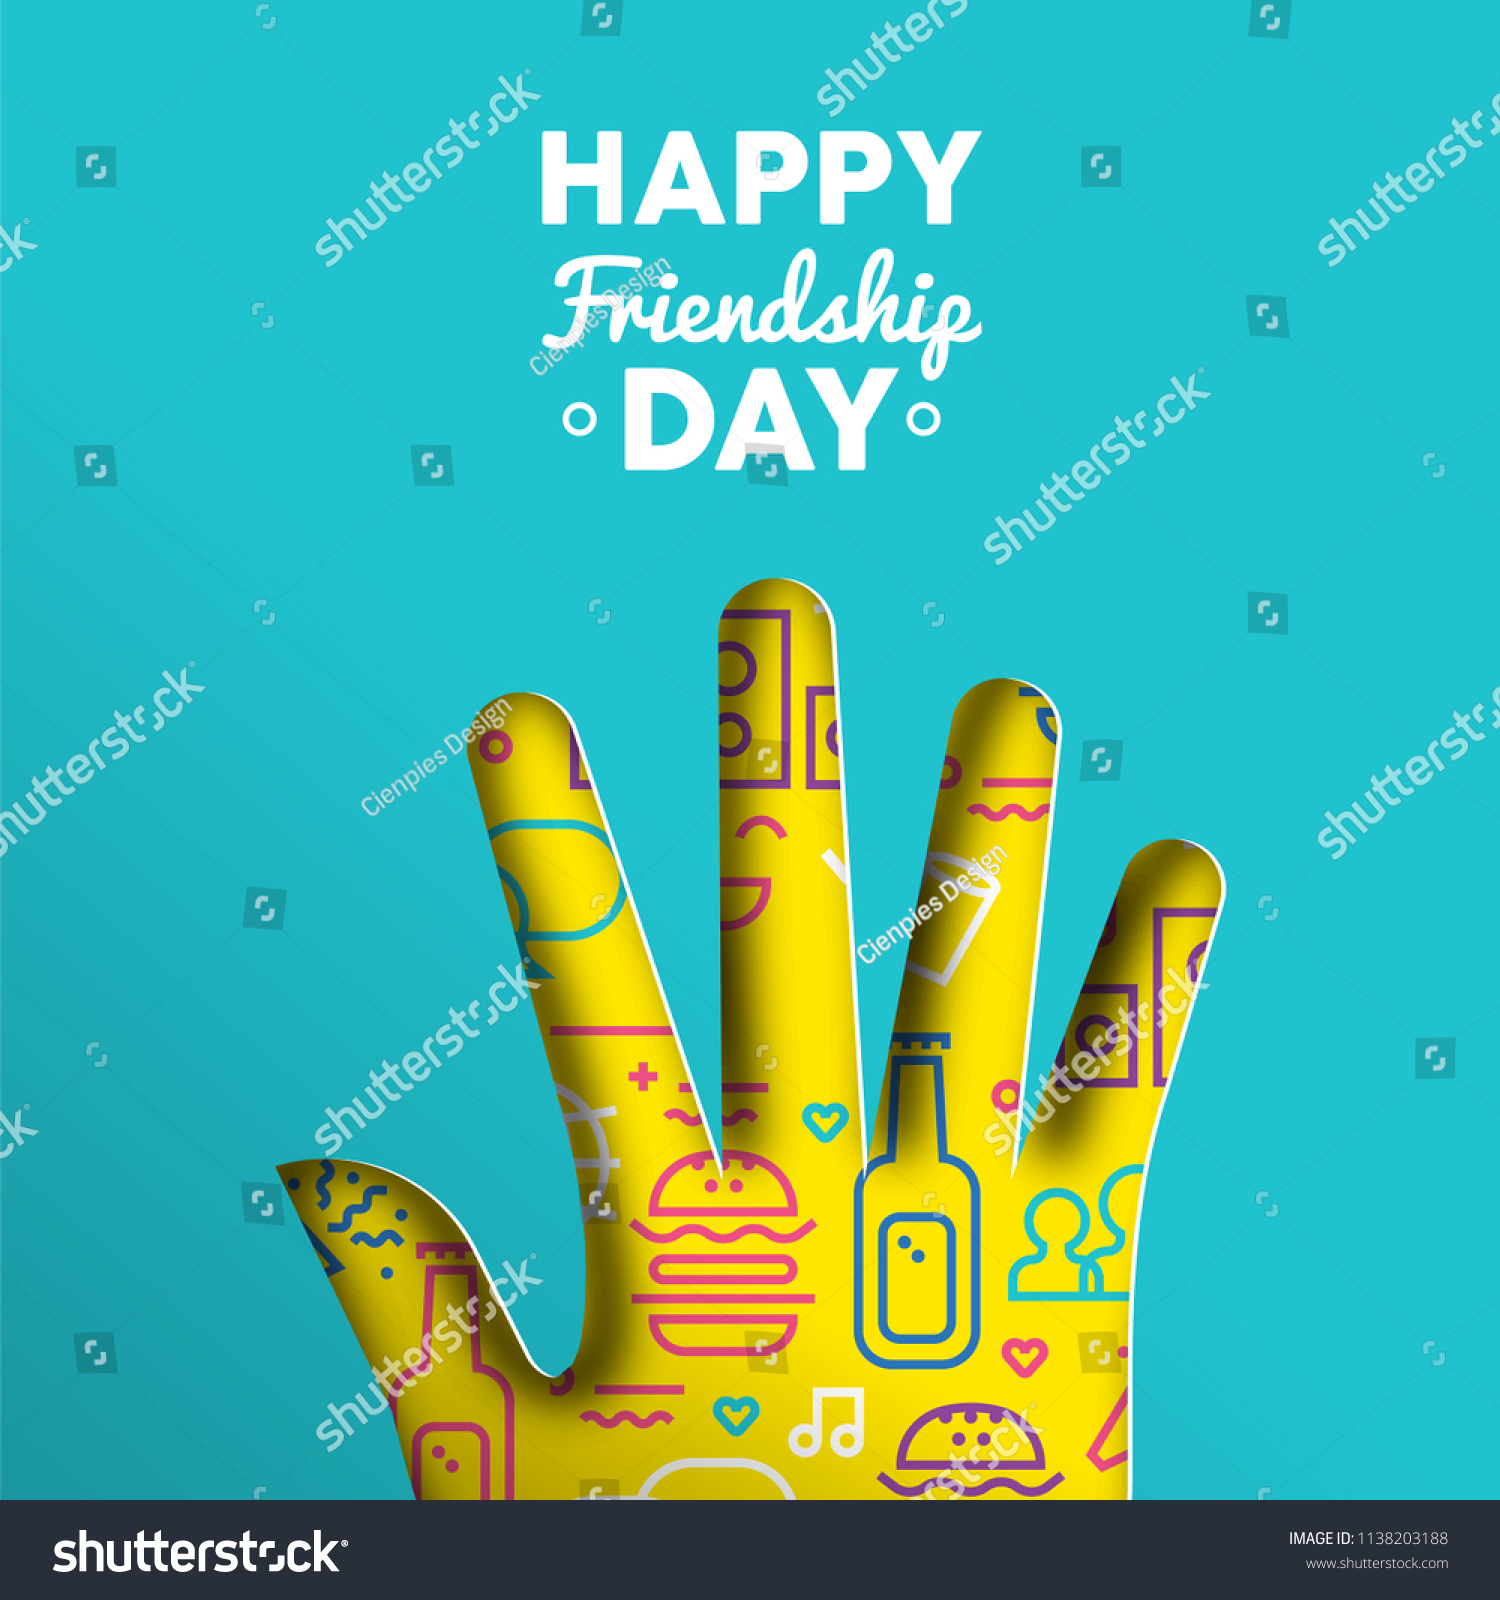 Happy Friendship Day Greeting Card Illustration Stock Vector